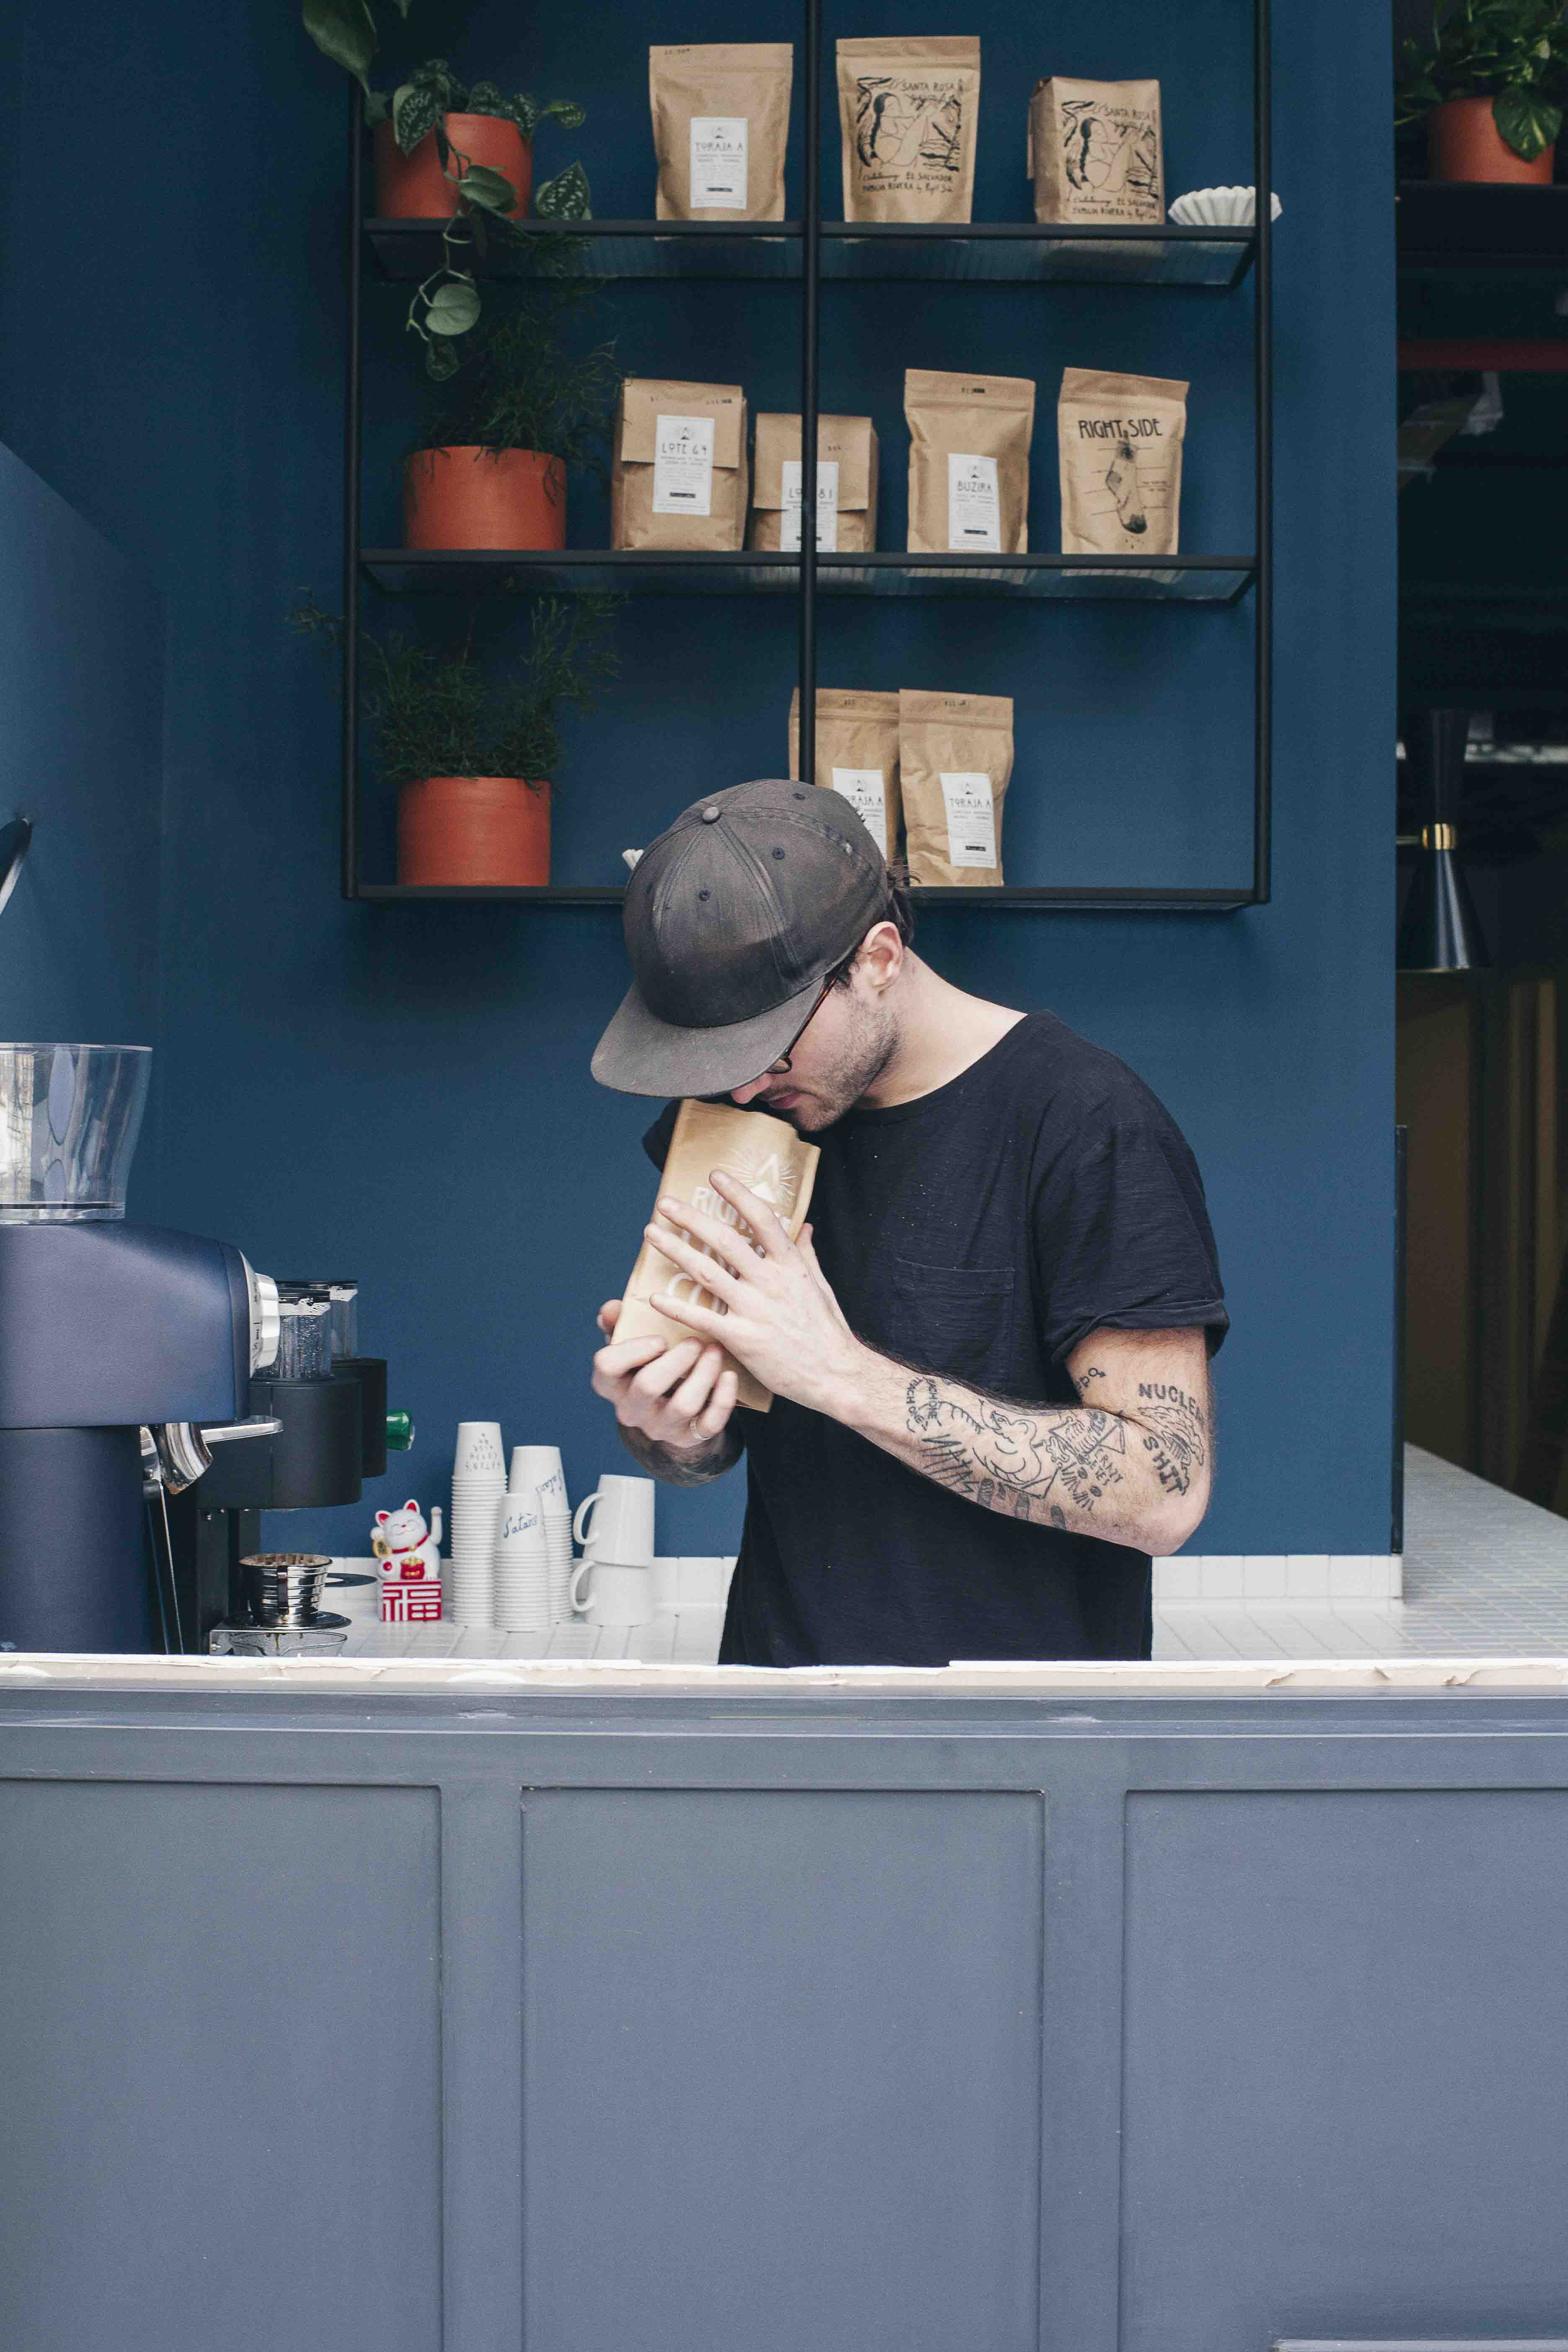 Man in cap smelling coffee from a brown bag behind a dark blue shop counter